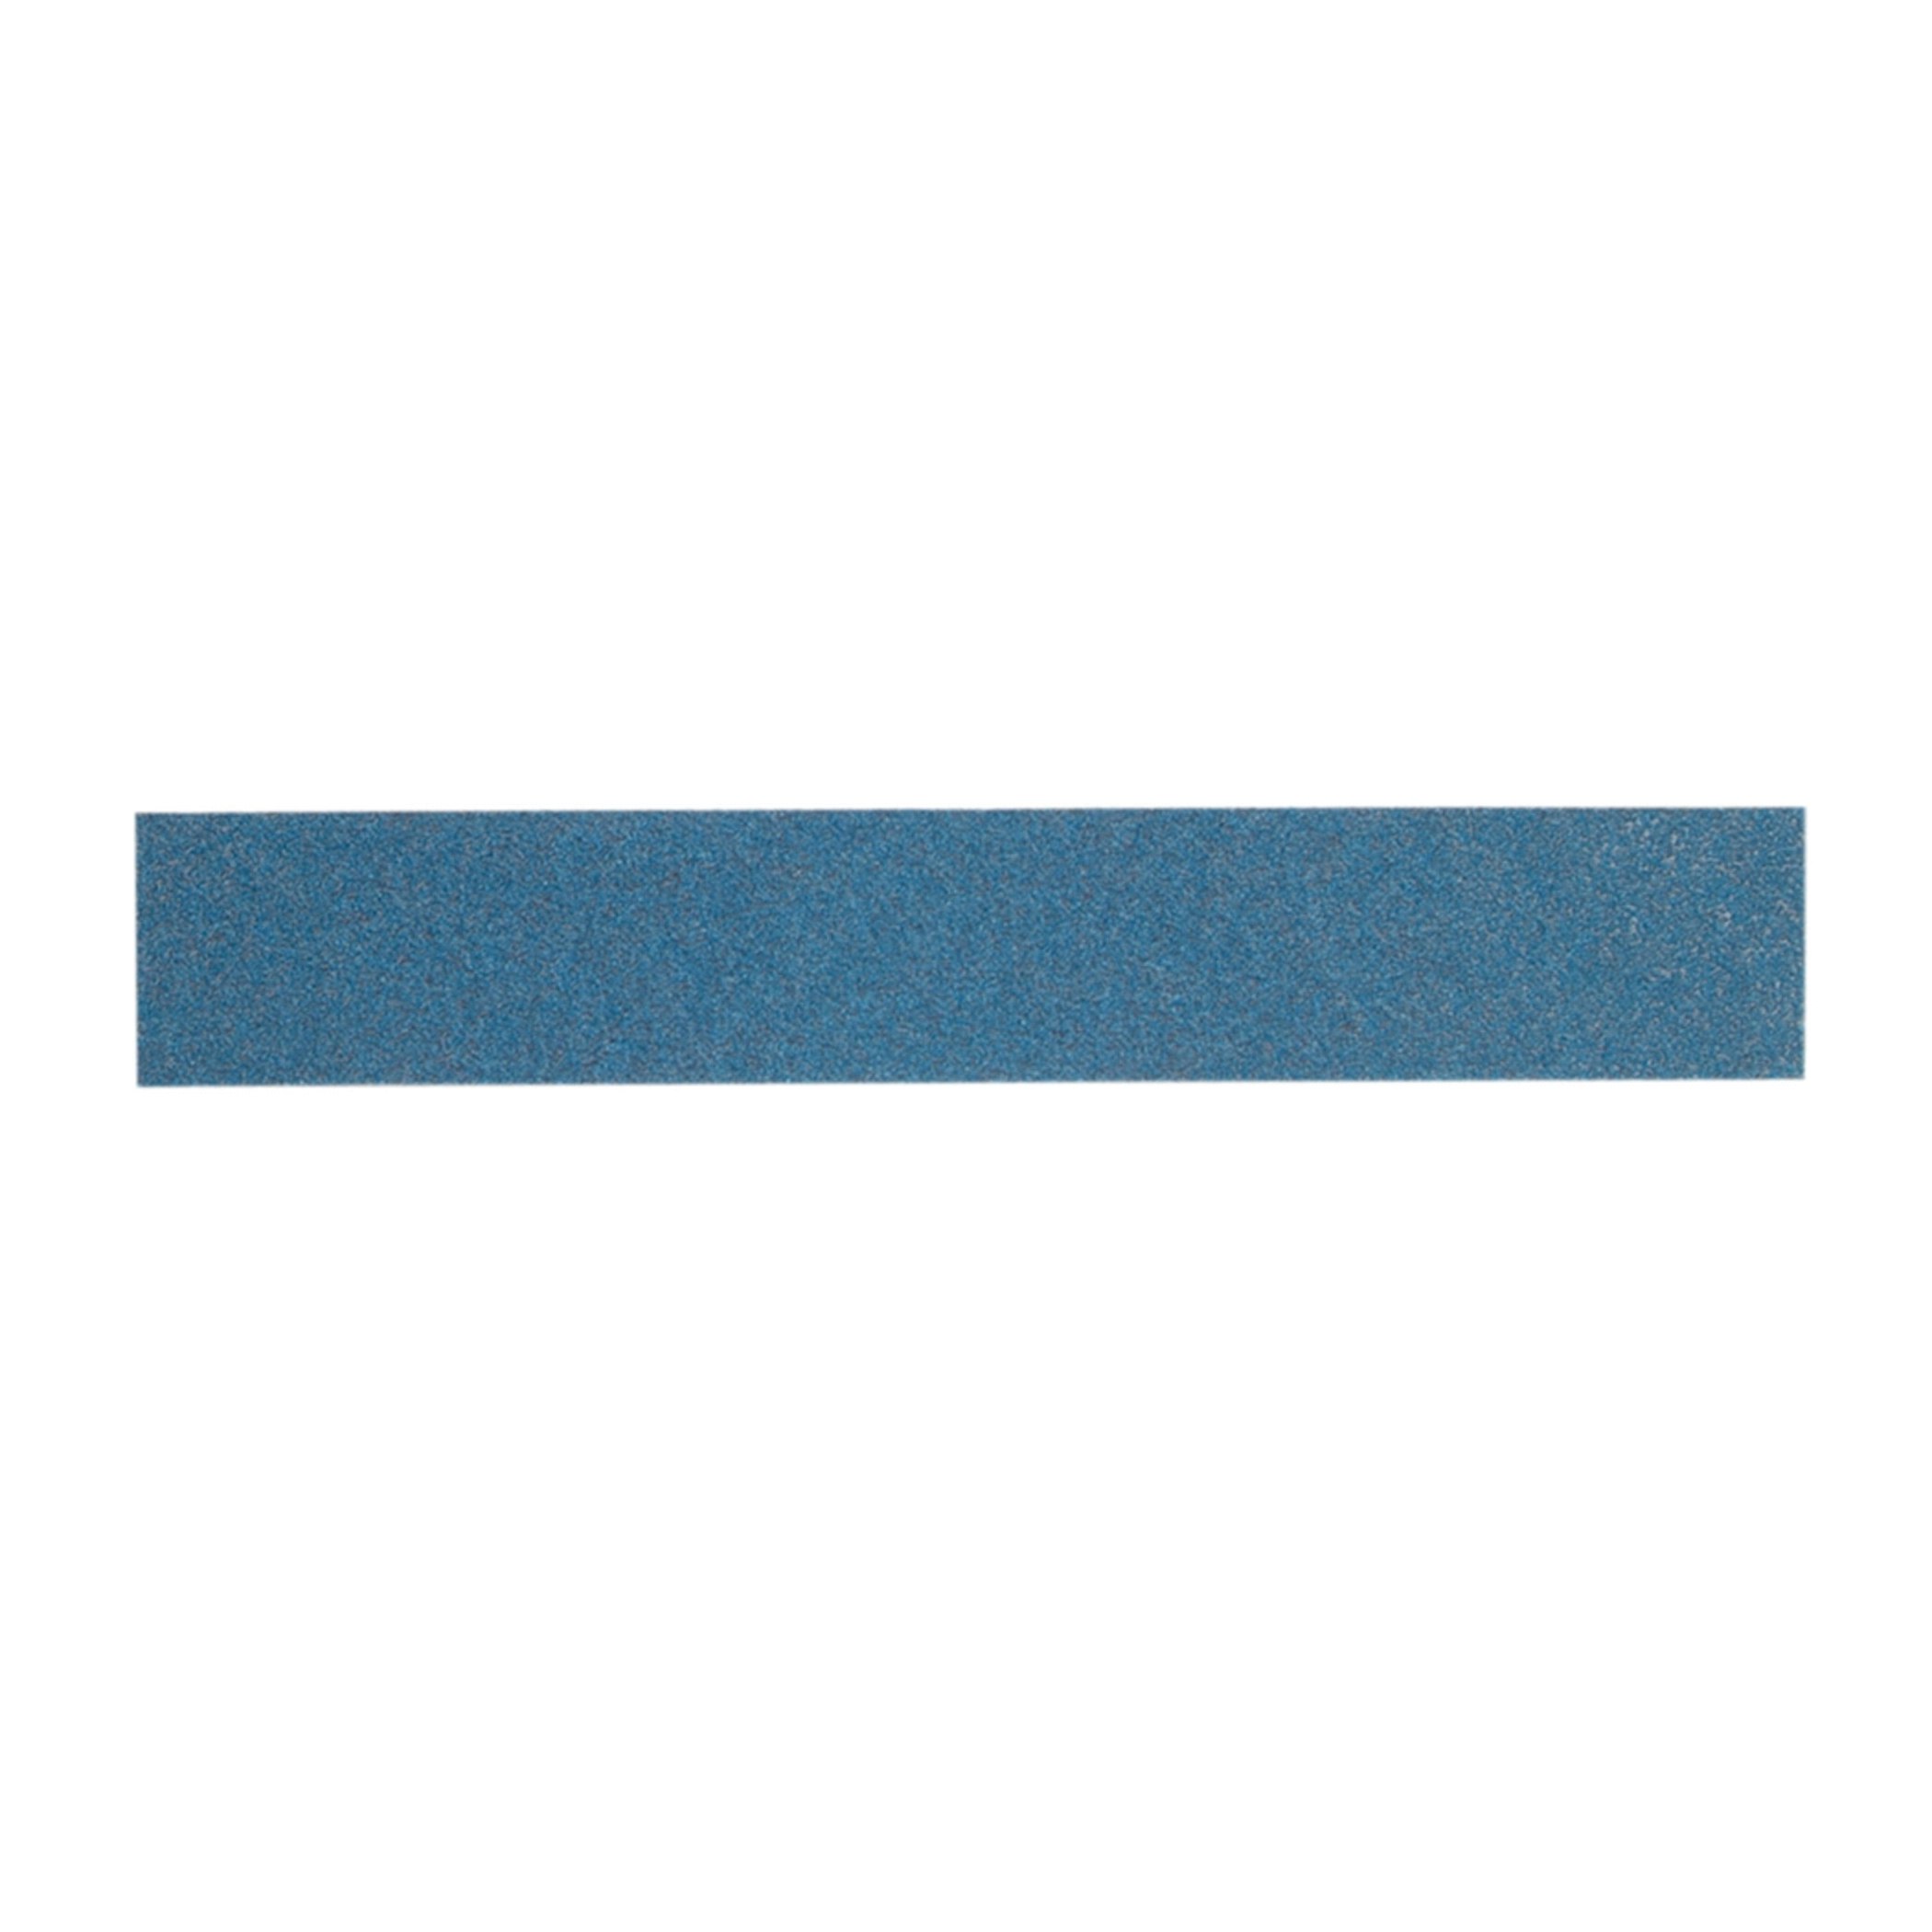 Norton® BlueFire® 66261123615 H875P Hook and Loop Coated File Strip, 16-1/2 in L x 2-3/4 in W, 40 Grit, Extra Coarse Grade, Zirconia Alumina Abrasive, Paper Backing